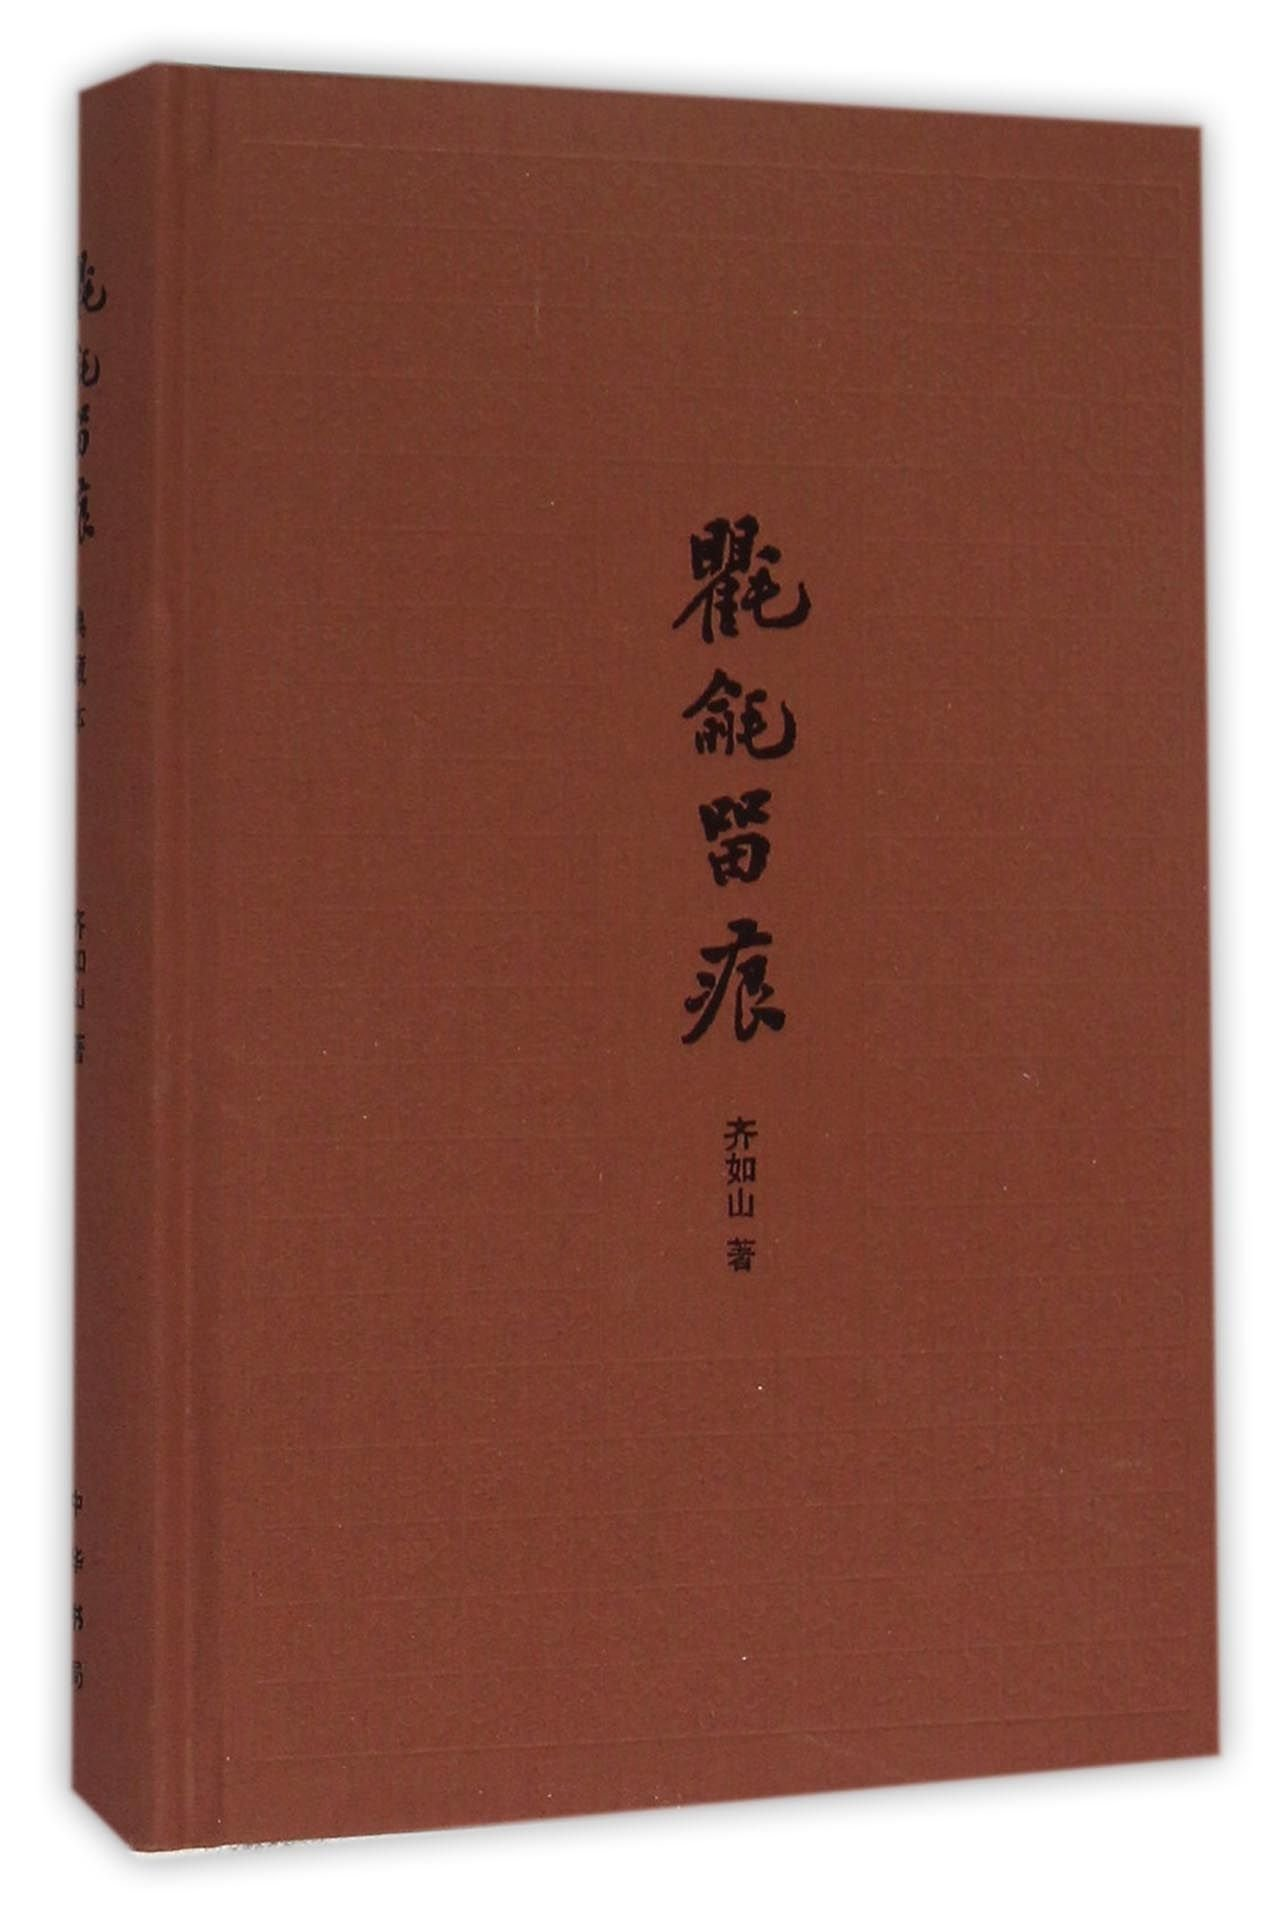 Remains of the Stage of Peking Opera (Chinese Edition) pdf